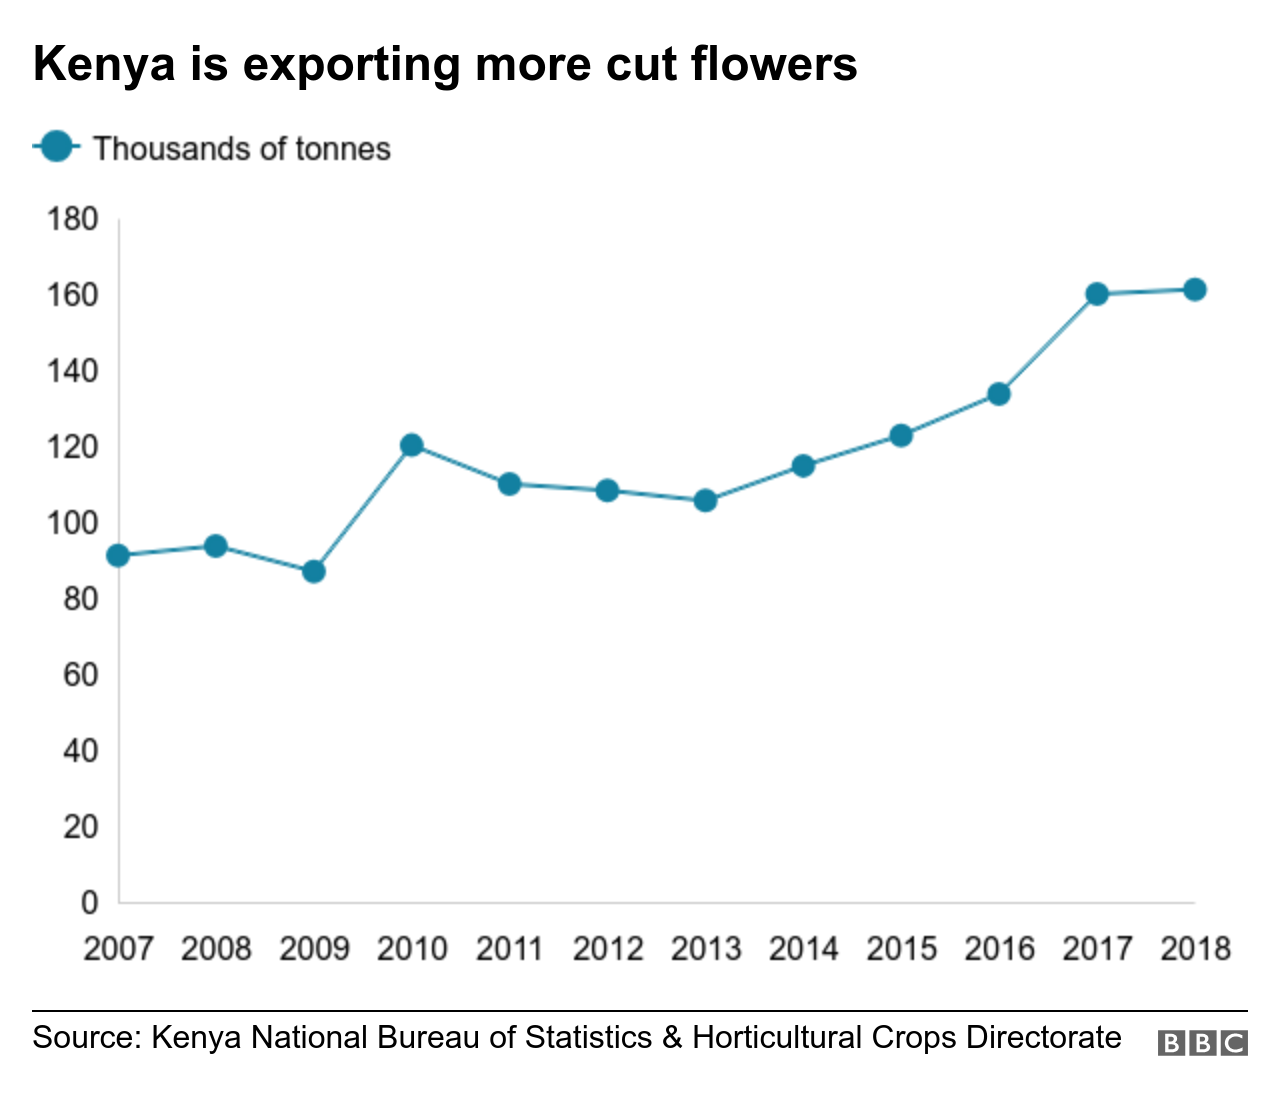 Chart shows how many flowers Kenya exports, which has risen since 2010.